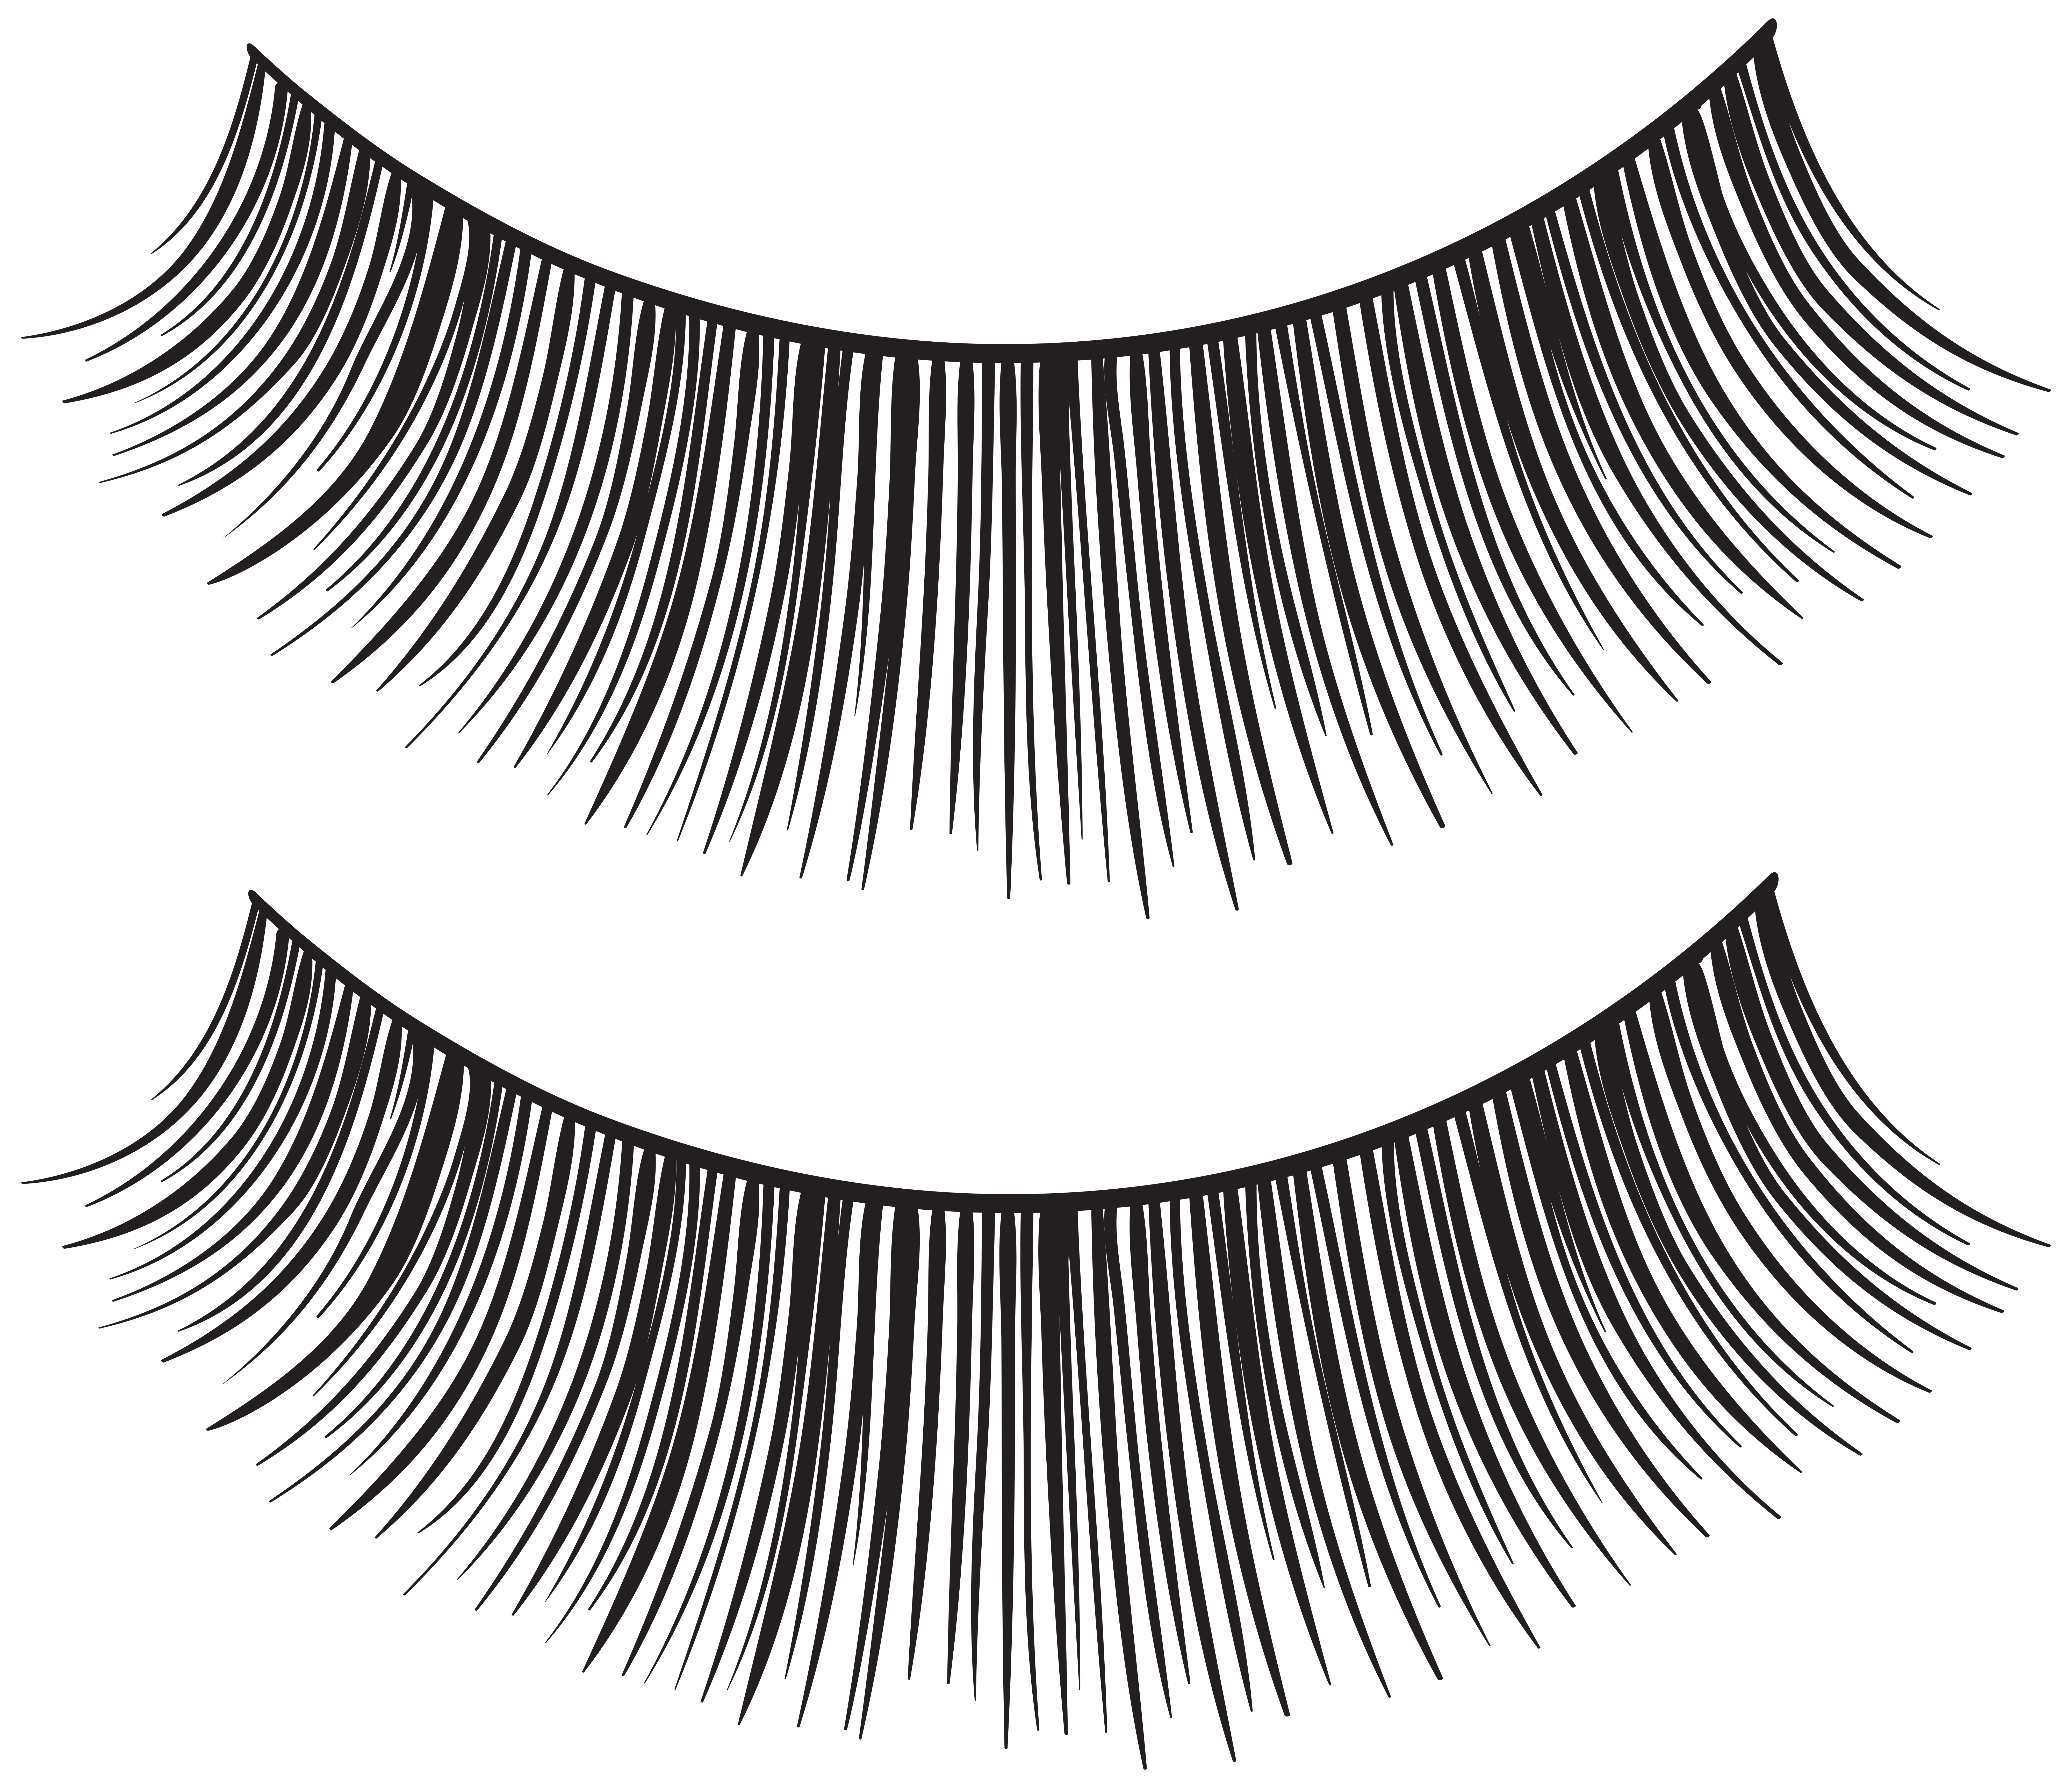 clipart royalty free library Eyelash clipart.  collection of eyelashes.